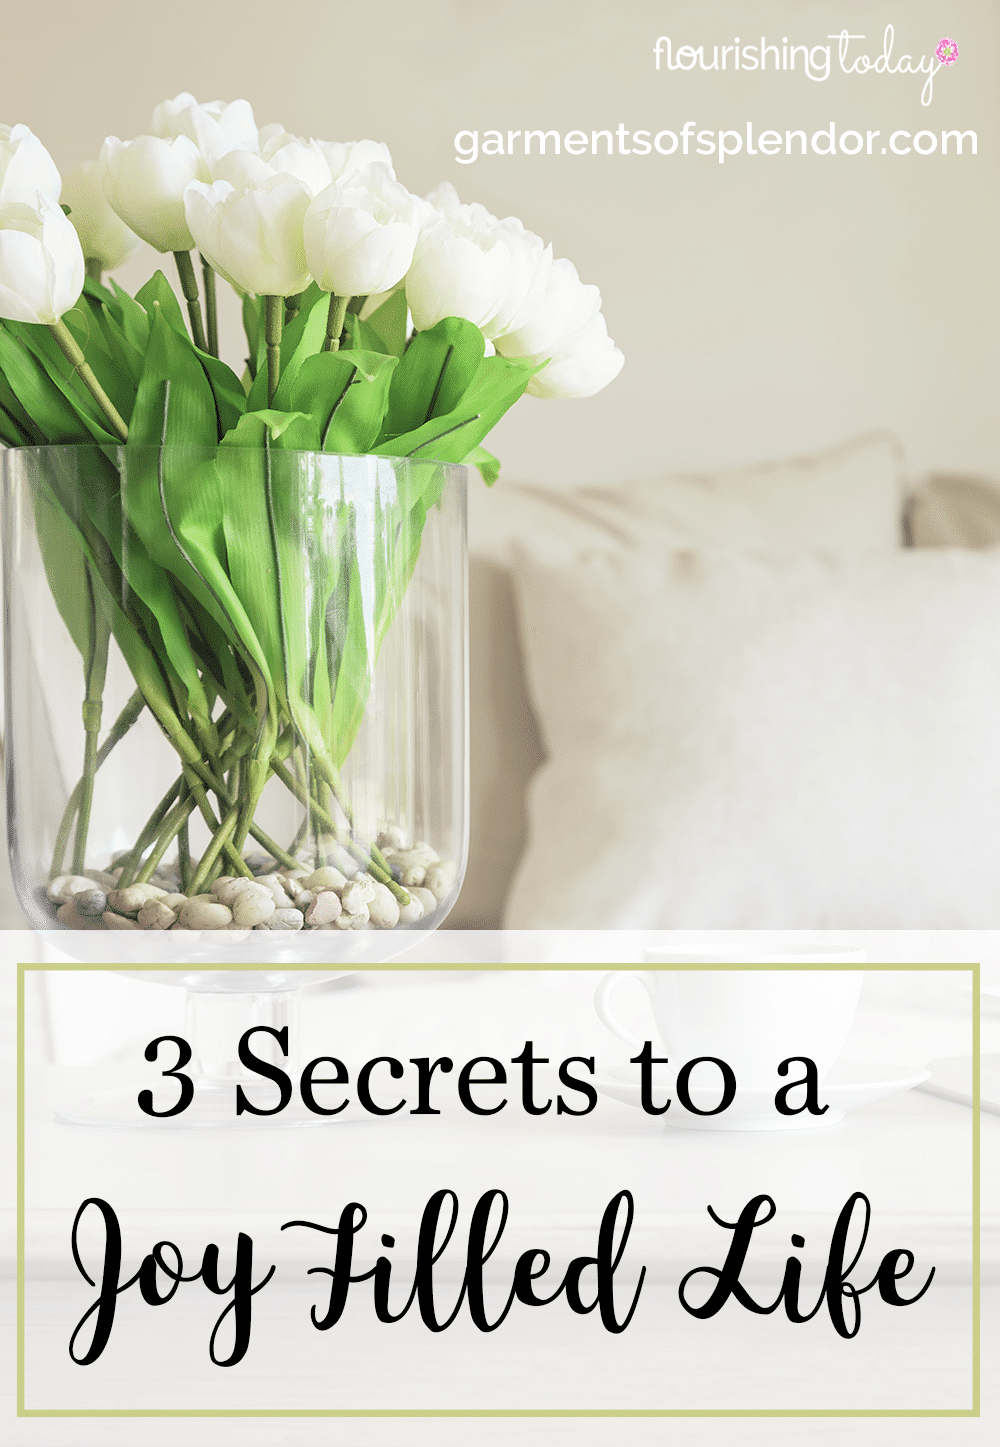 Are you searching for a life filled with joy? You can be joyful regardless of your circumstances. Here are 3 secrets to a joy filled life.